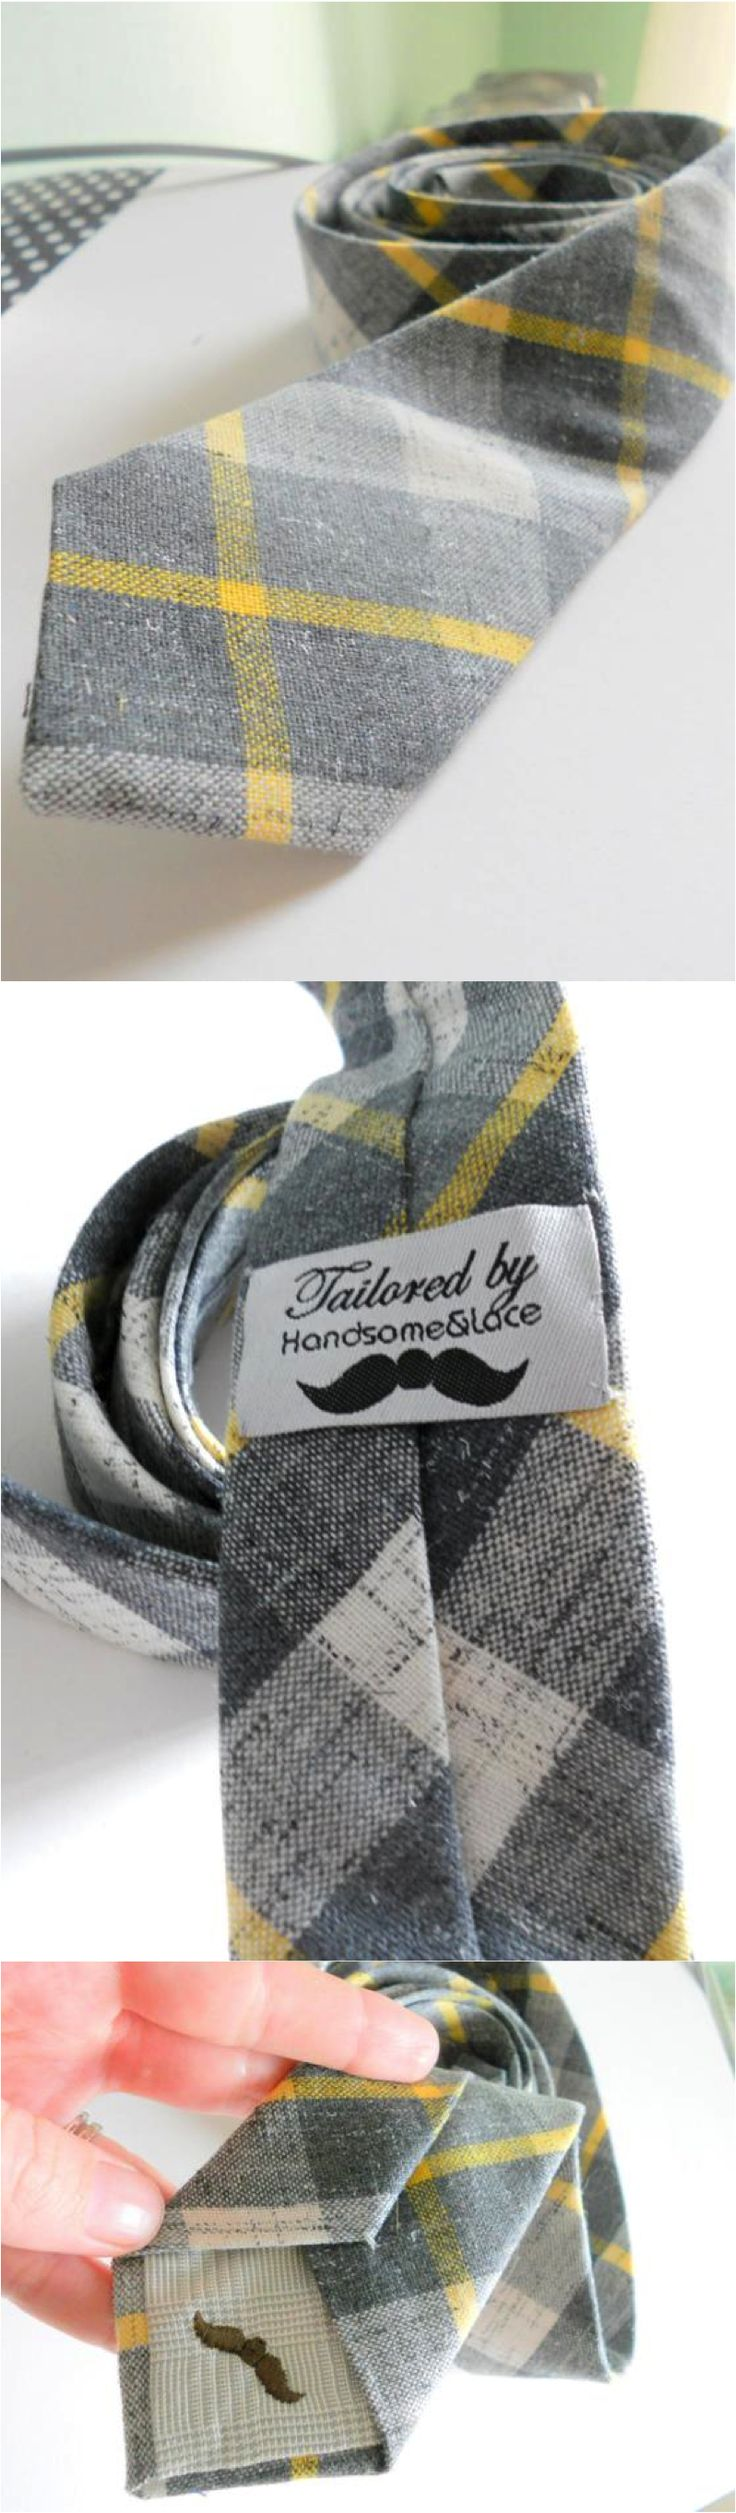 Date night is the perfect night to show off your awesome new grey and yellow tartan tie! | Made on Hatch.co by independent designers & artists